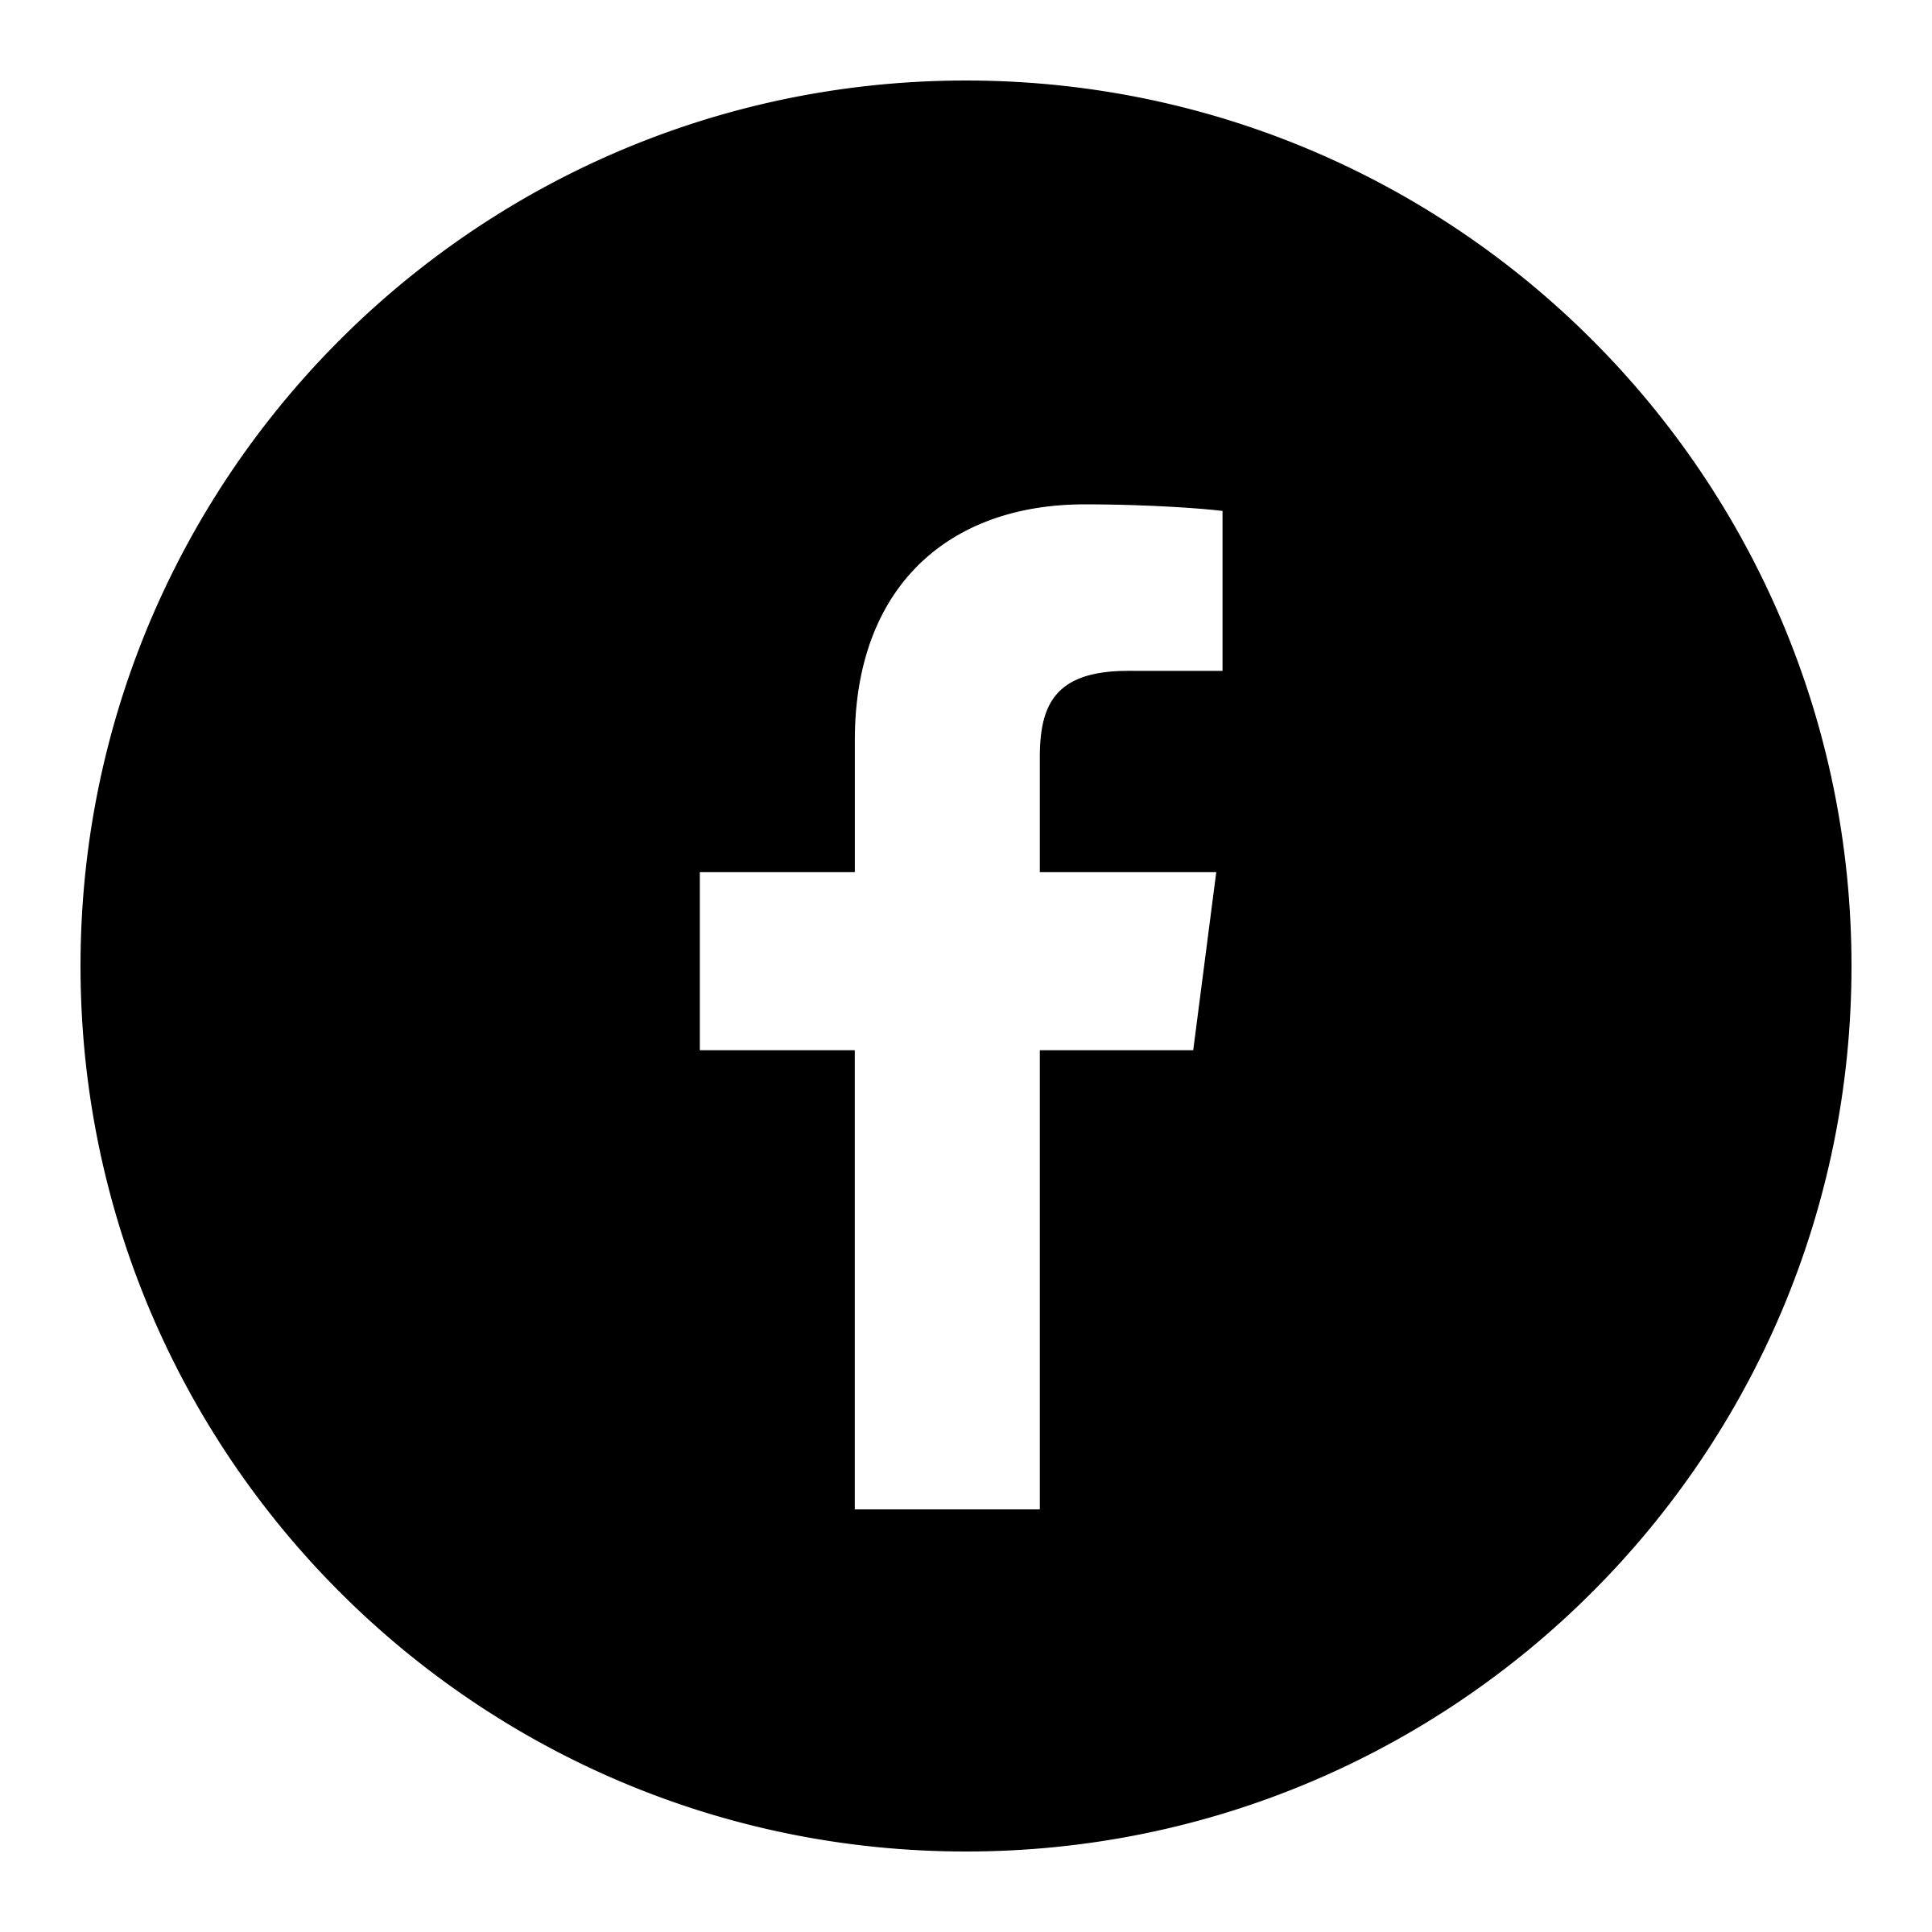 Image result for facebook logo white